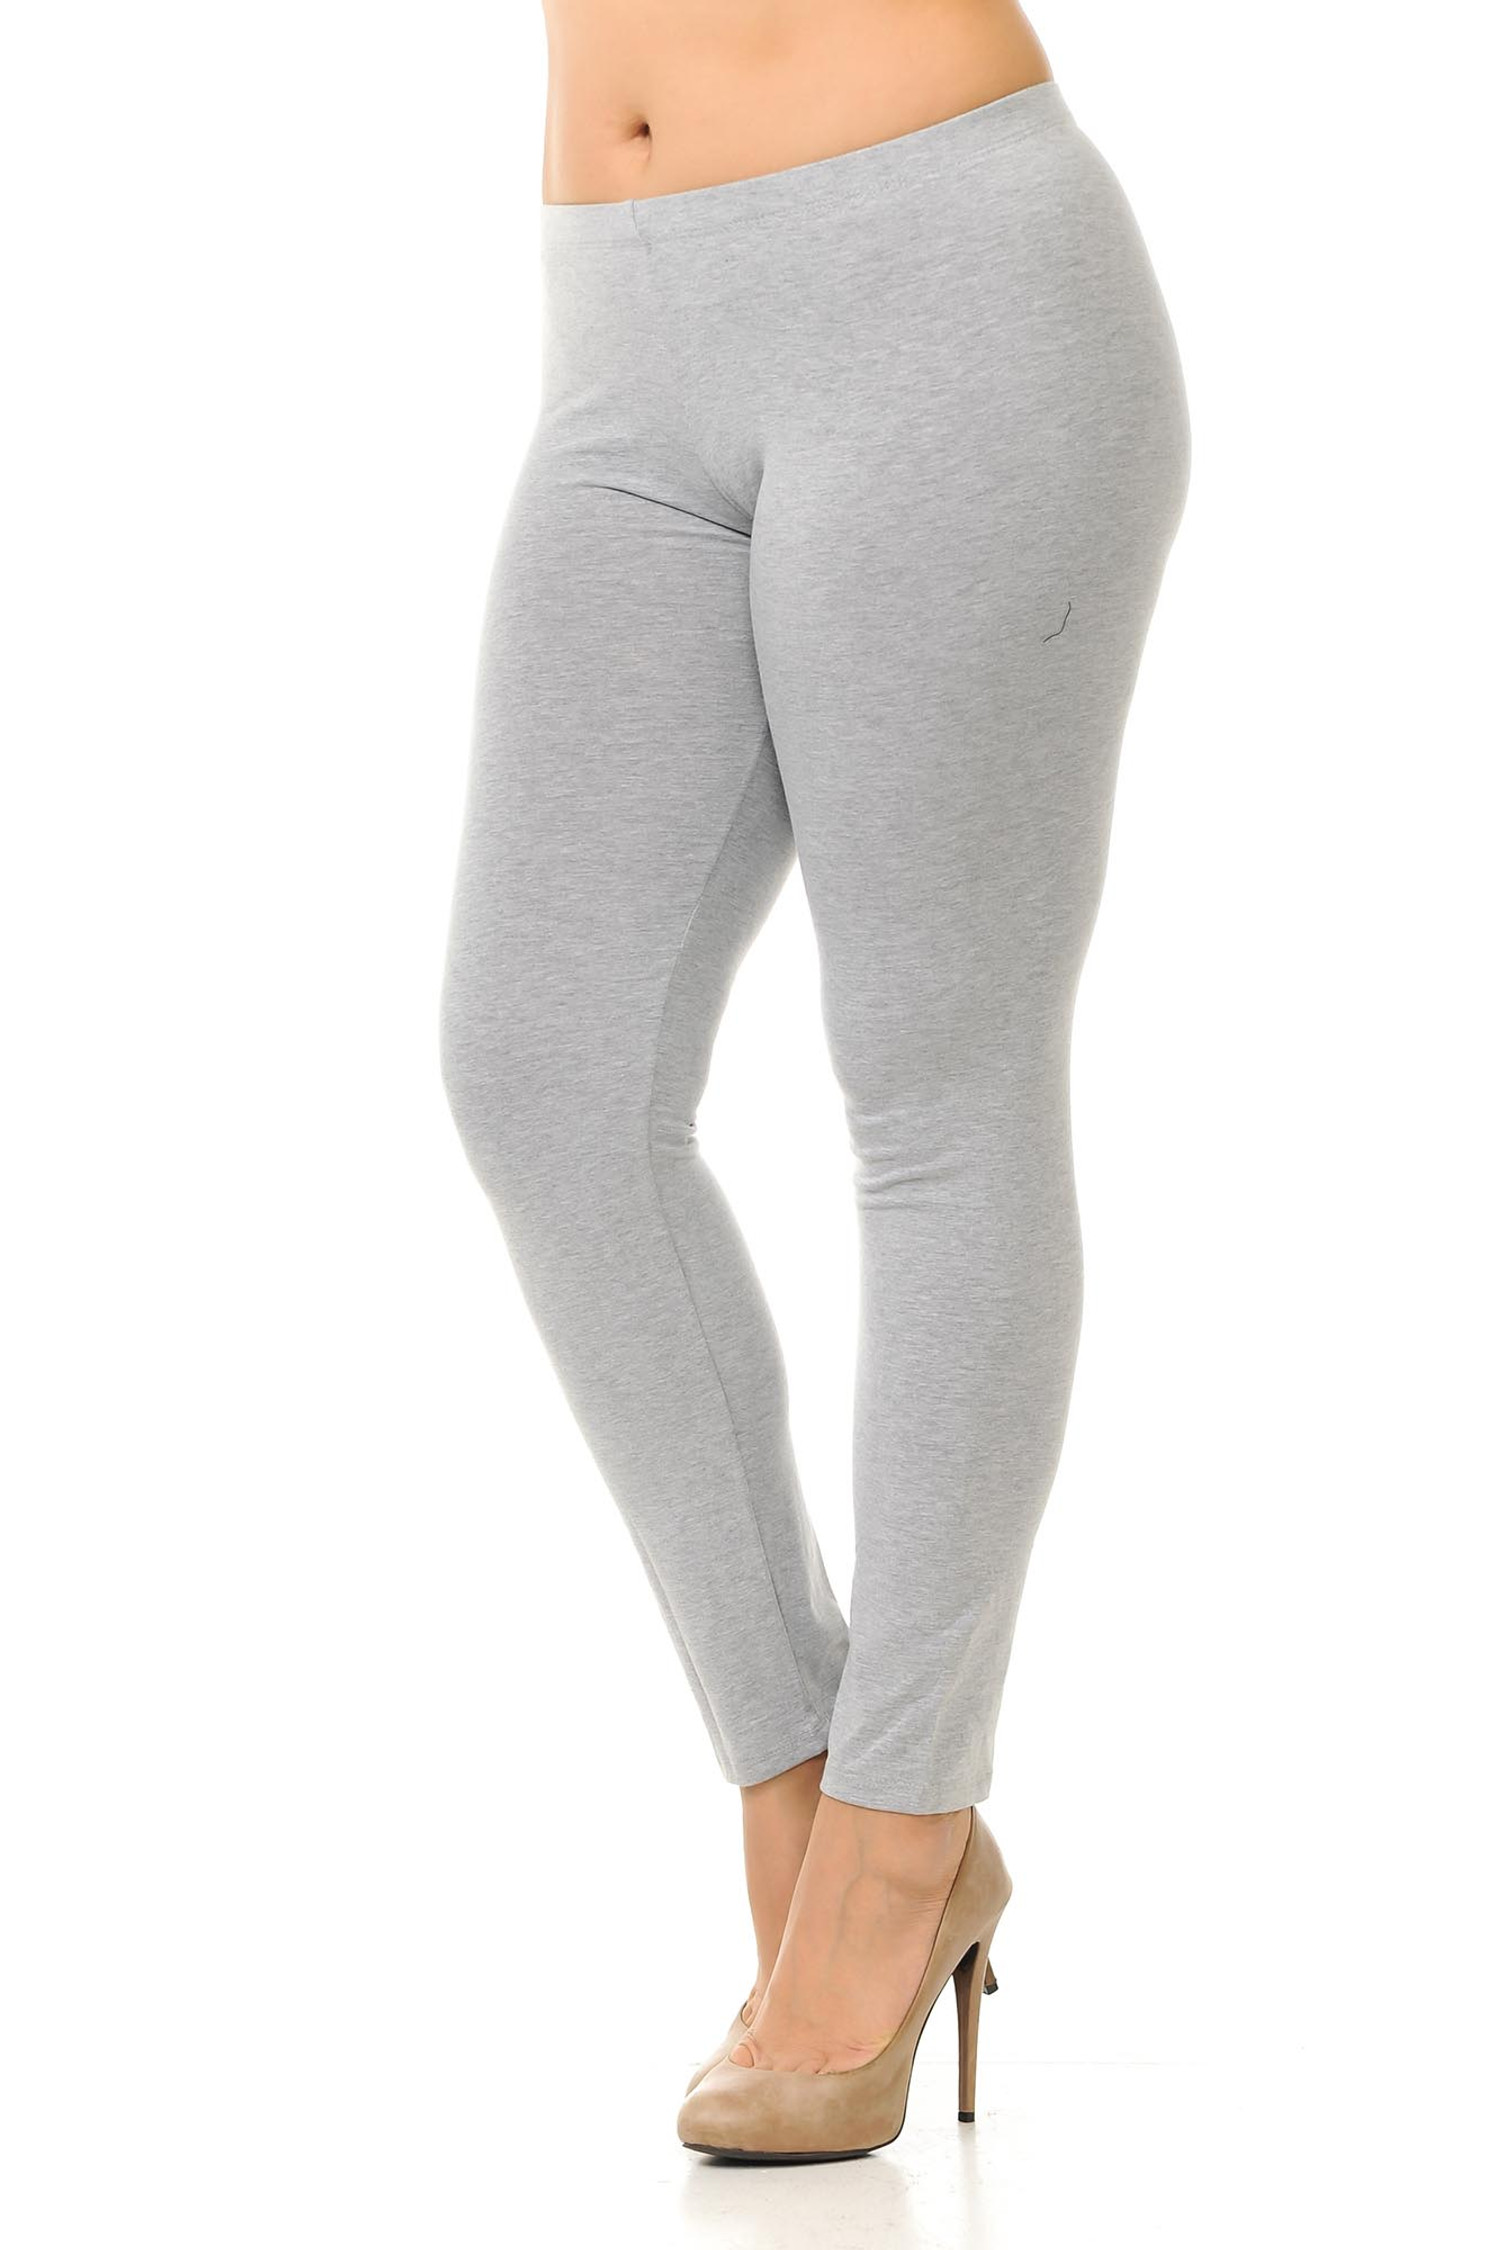 45 degree angled view of heather gray plus size qUSA Cotton Full Length Leggings